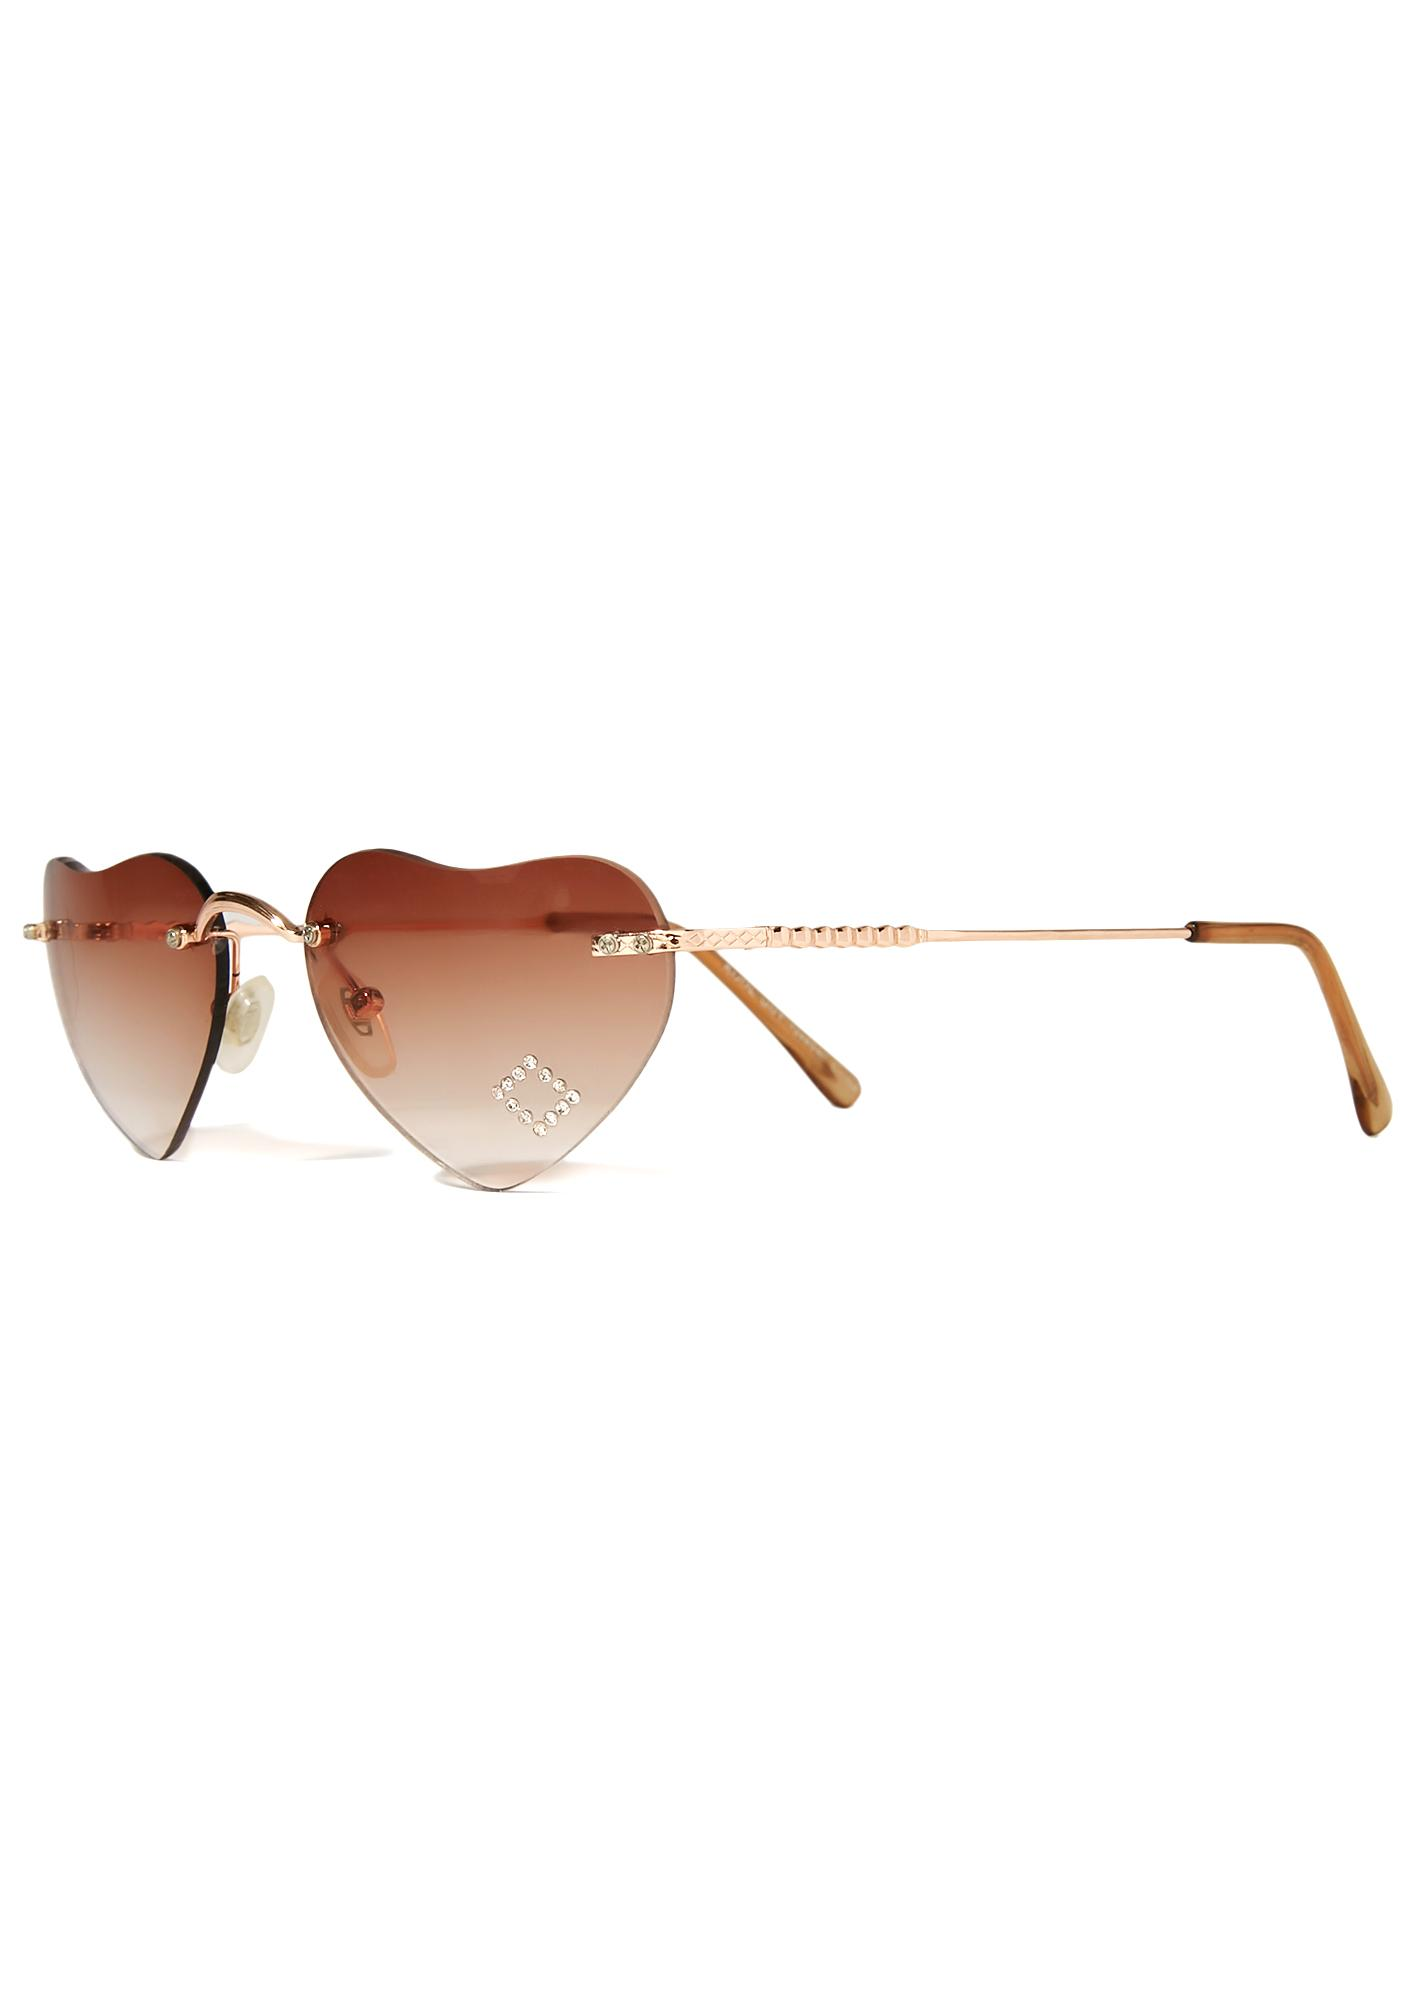 Chocolate Lolita Hearts Sunglasses